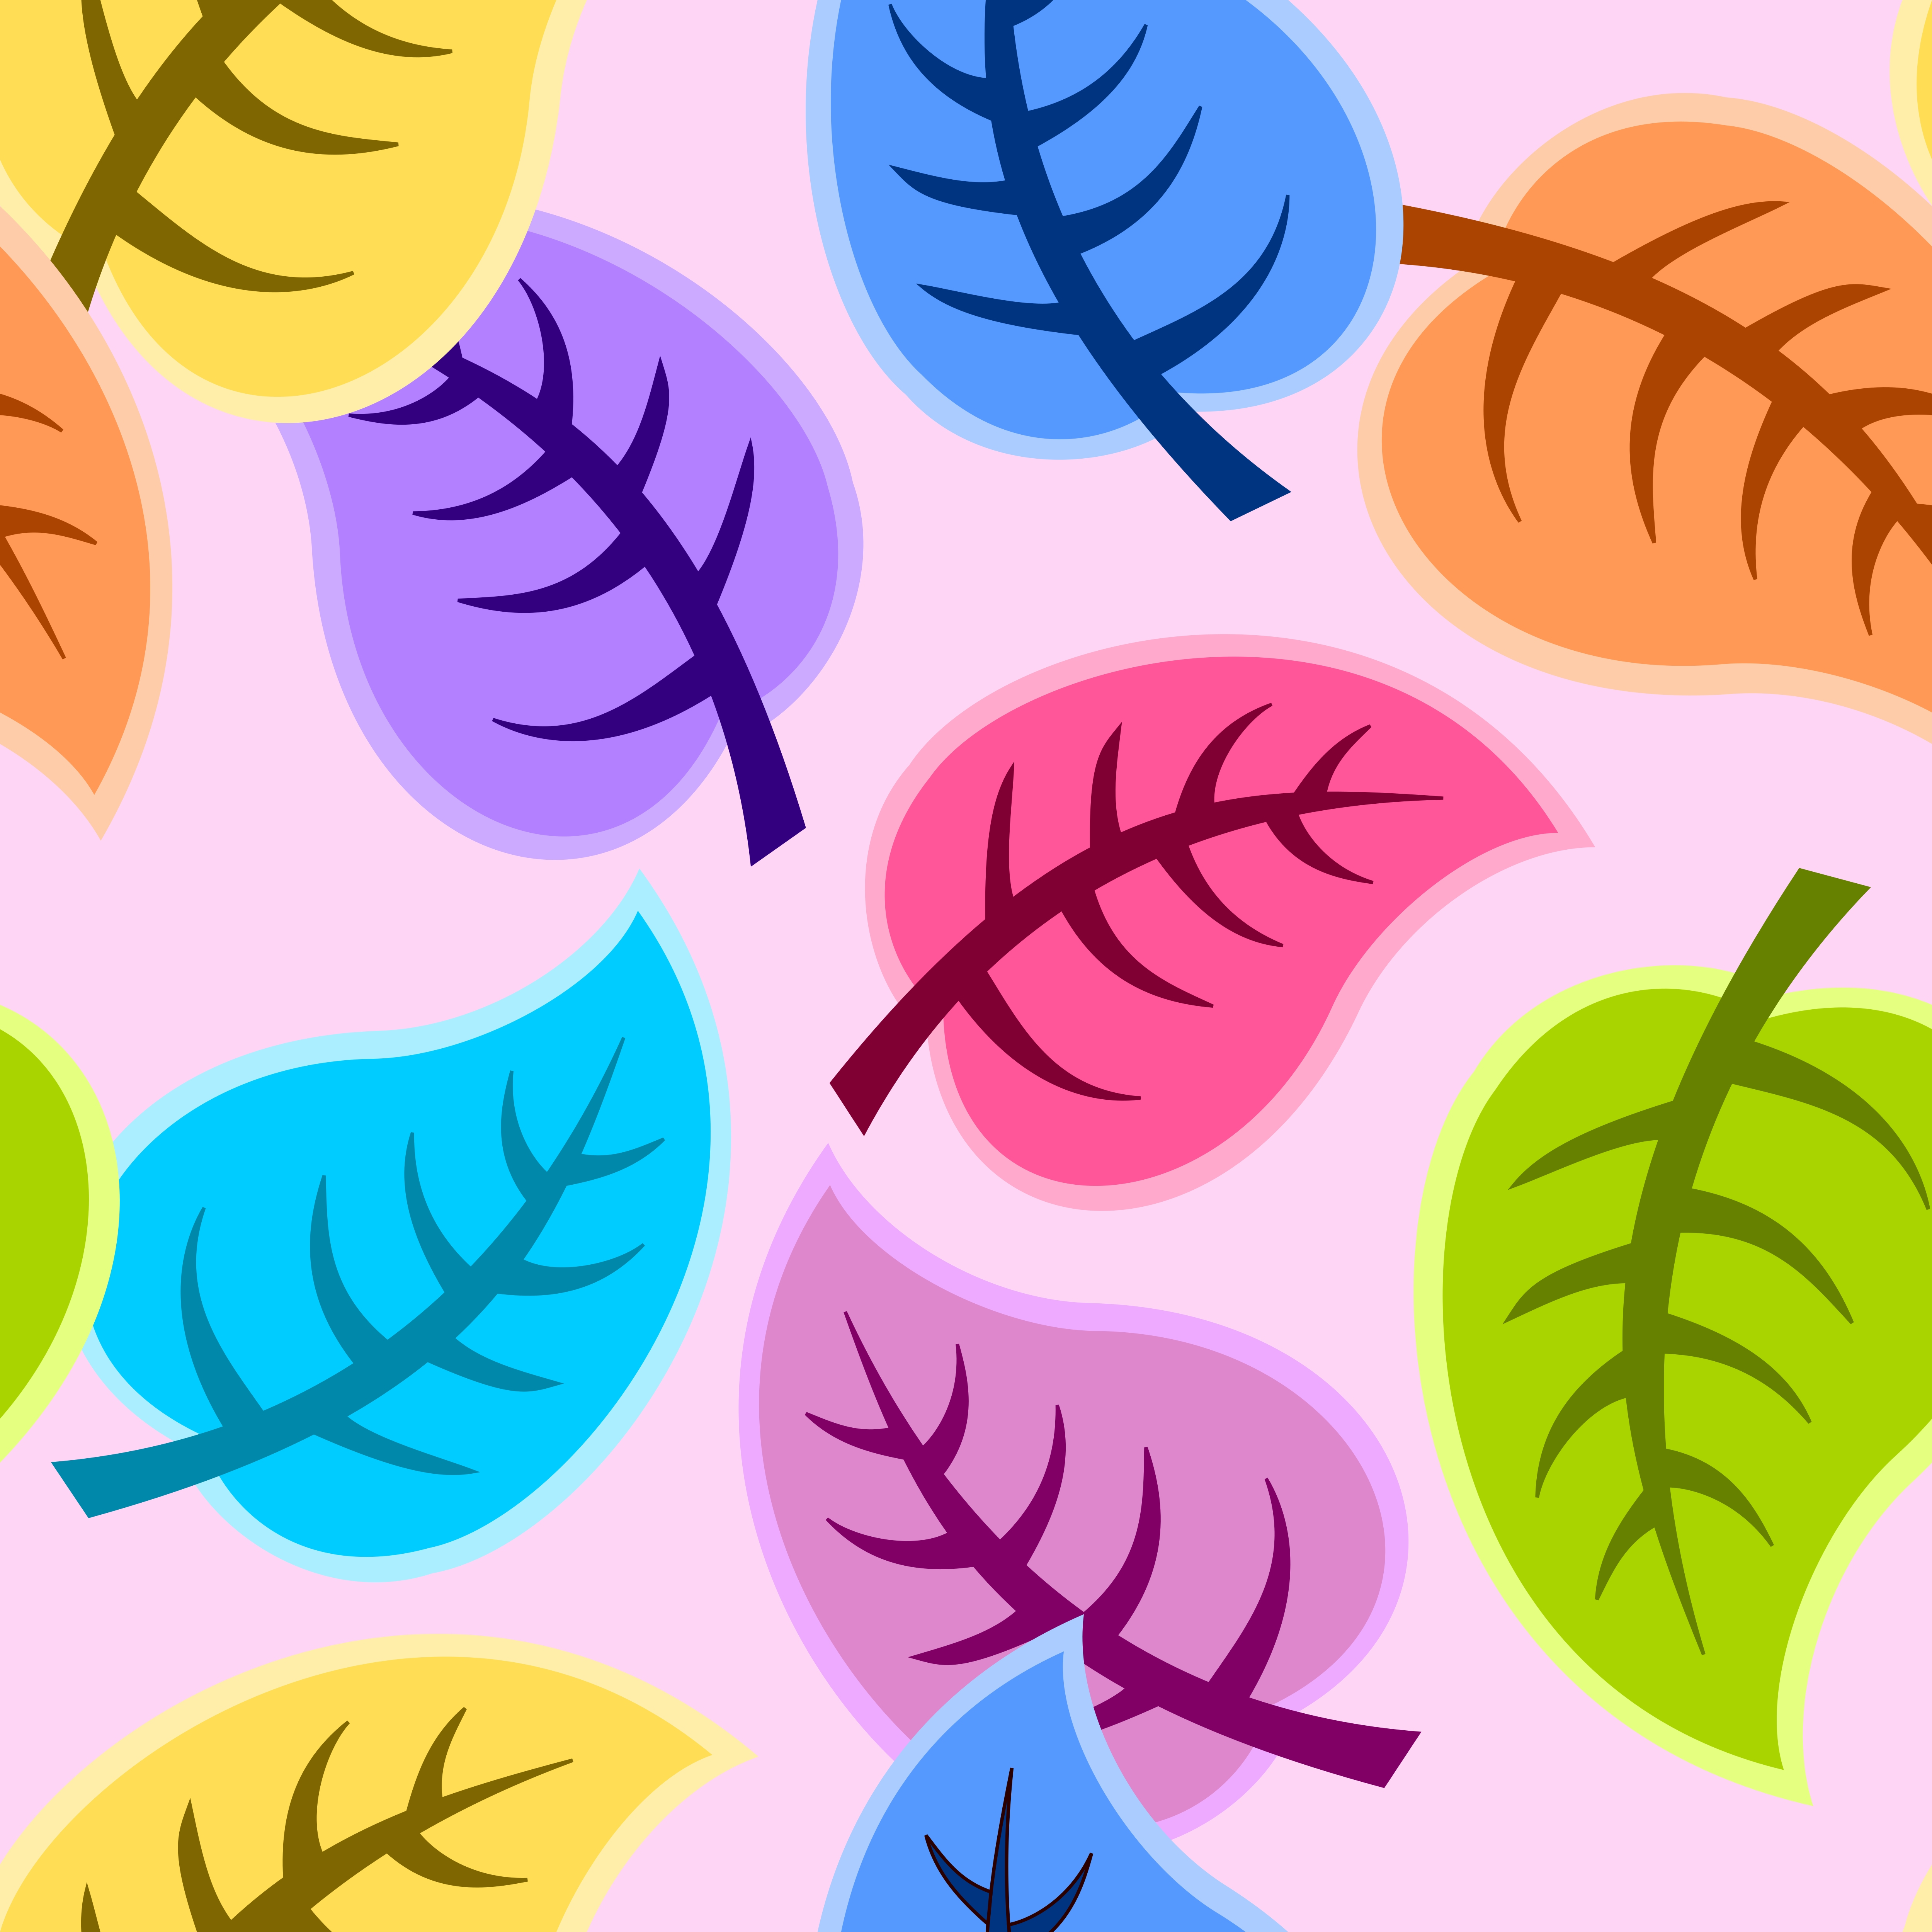 105698 download wallpaper Art, Leaves, Vector, Multicolored, Motley screensavers and pictures for free